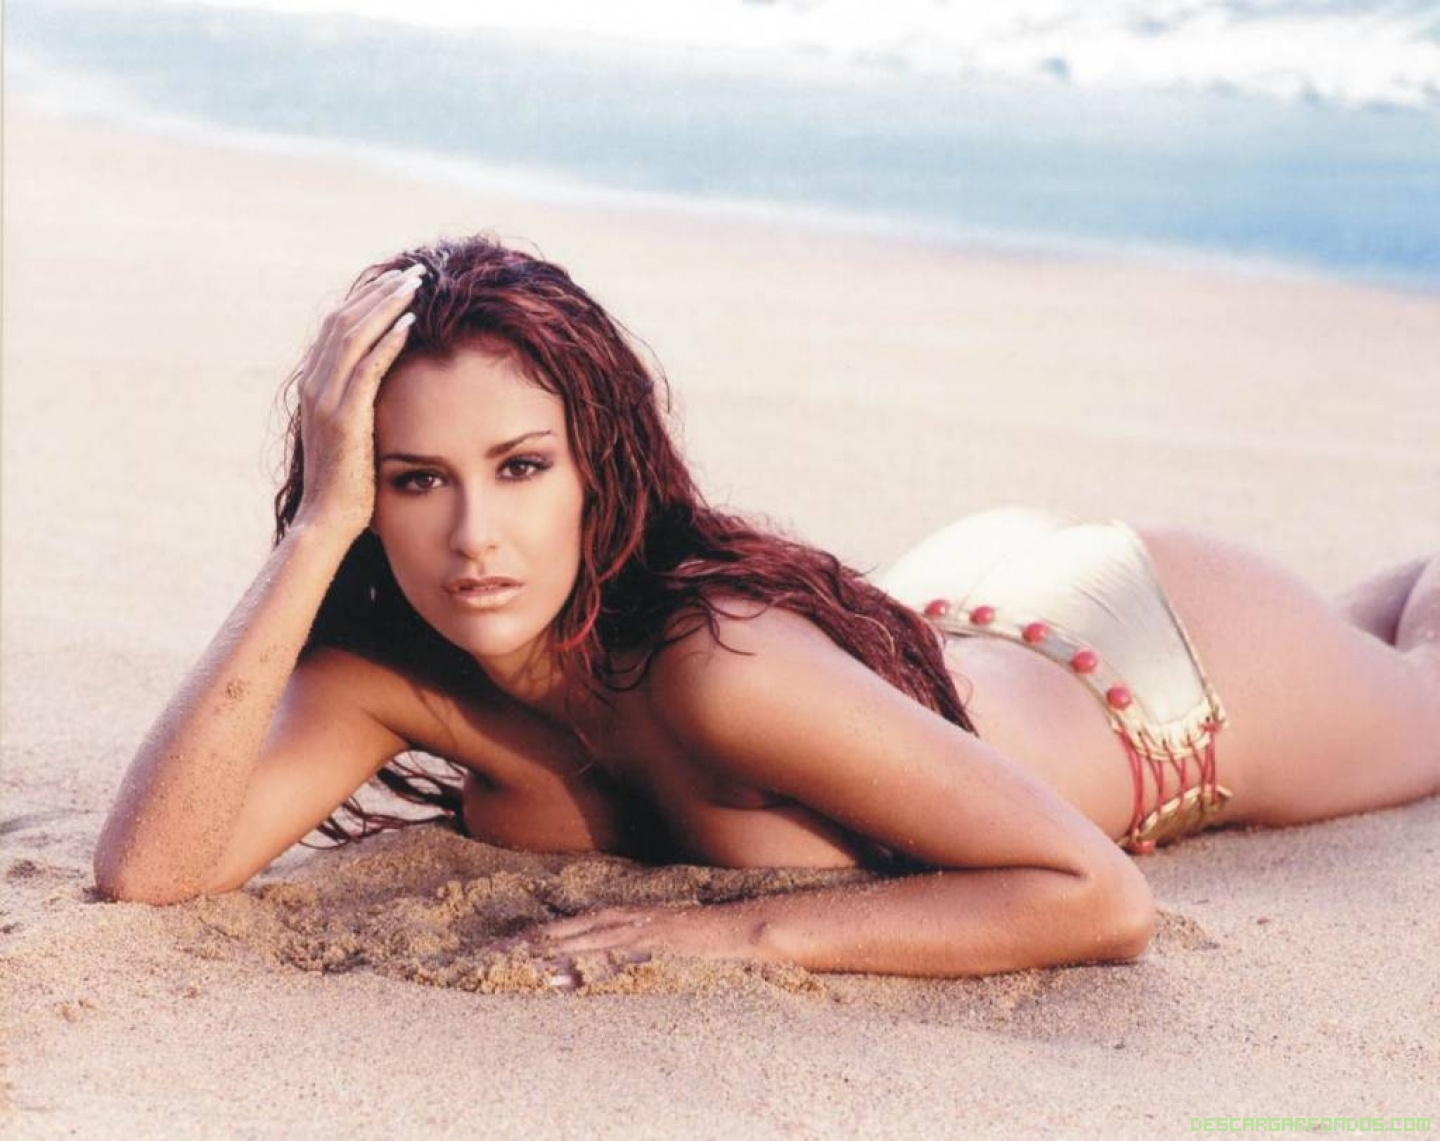 Images of Ninel Conde Wallpaper Widescreen - #SC